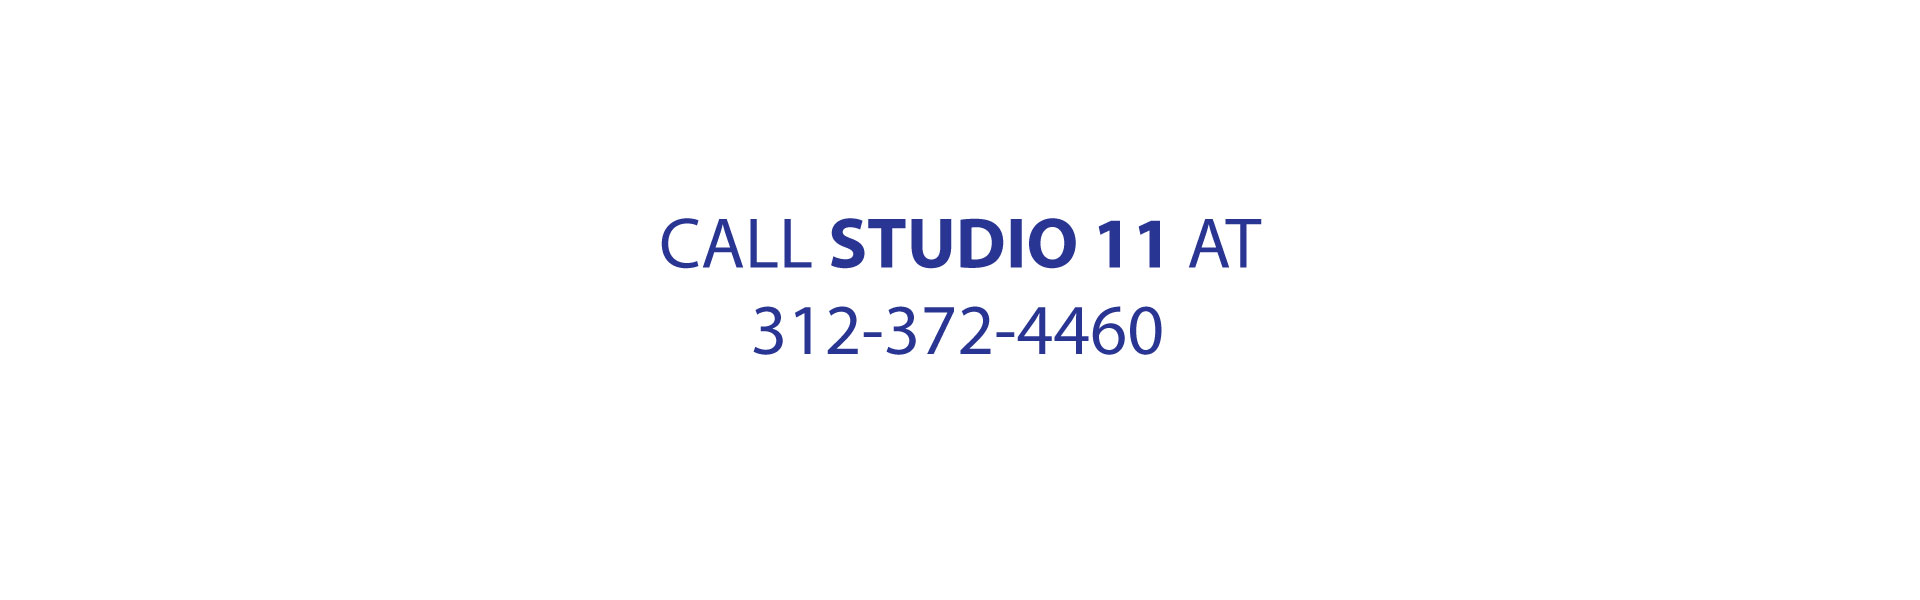 http://www.studio11chicago.com/studio11chicago.com/wp-content/uploads/2016/11/CALL-BANNER-3.jpg